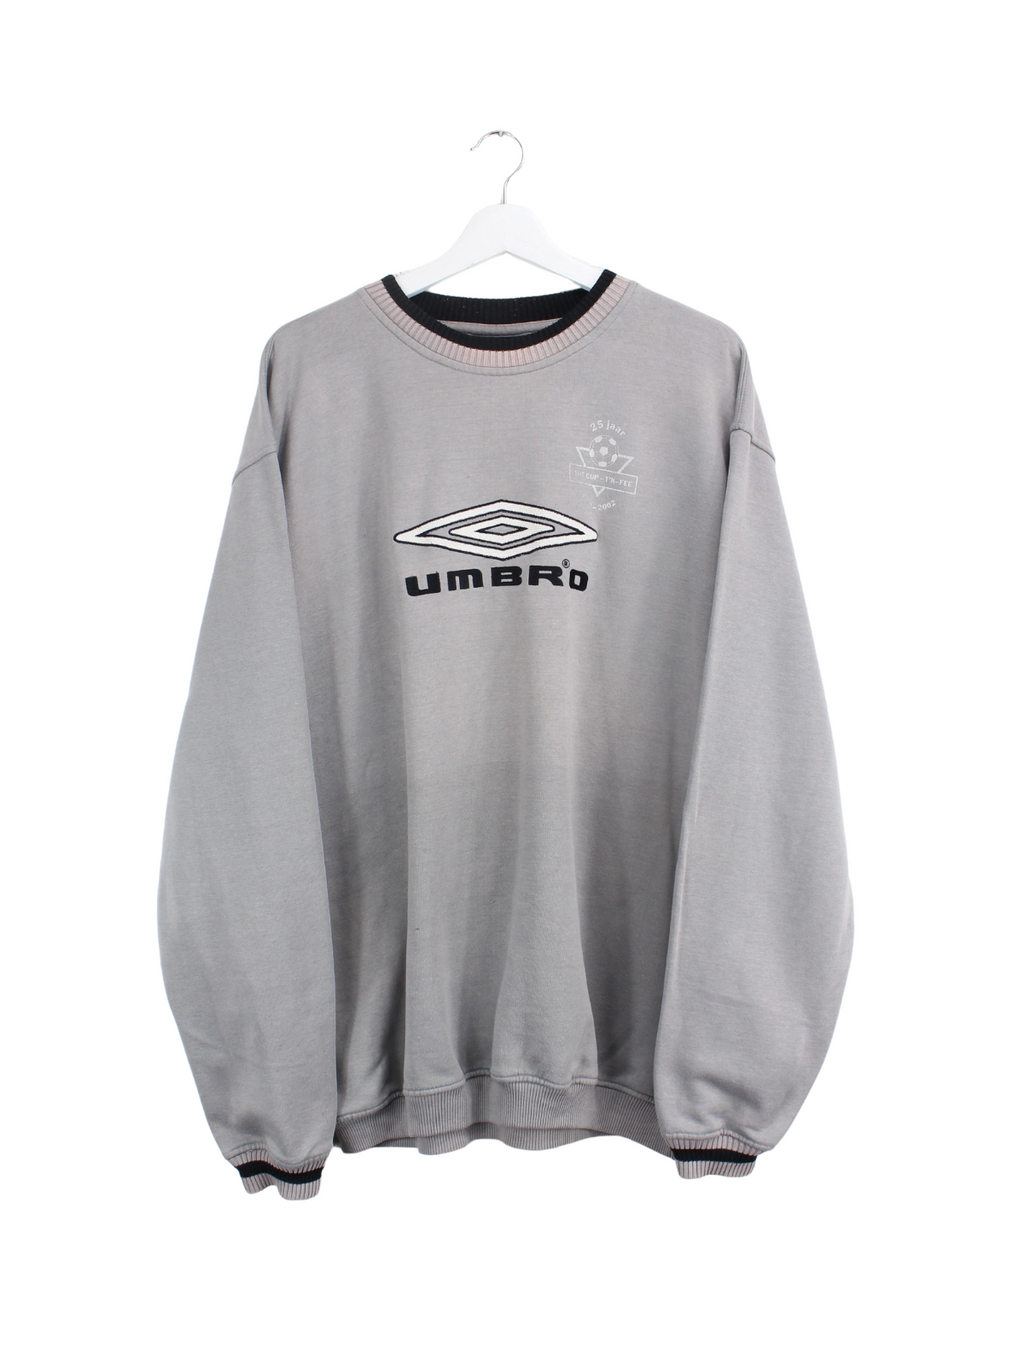 Umbro Sweater Grau XL